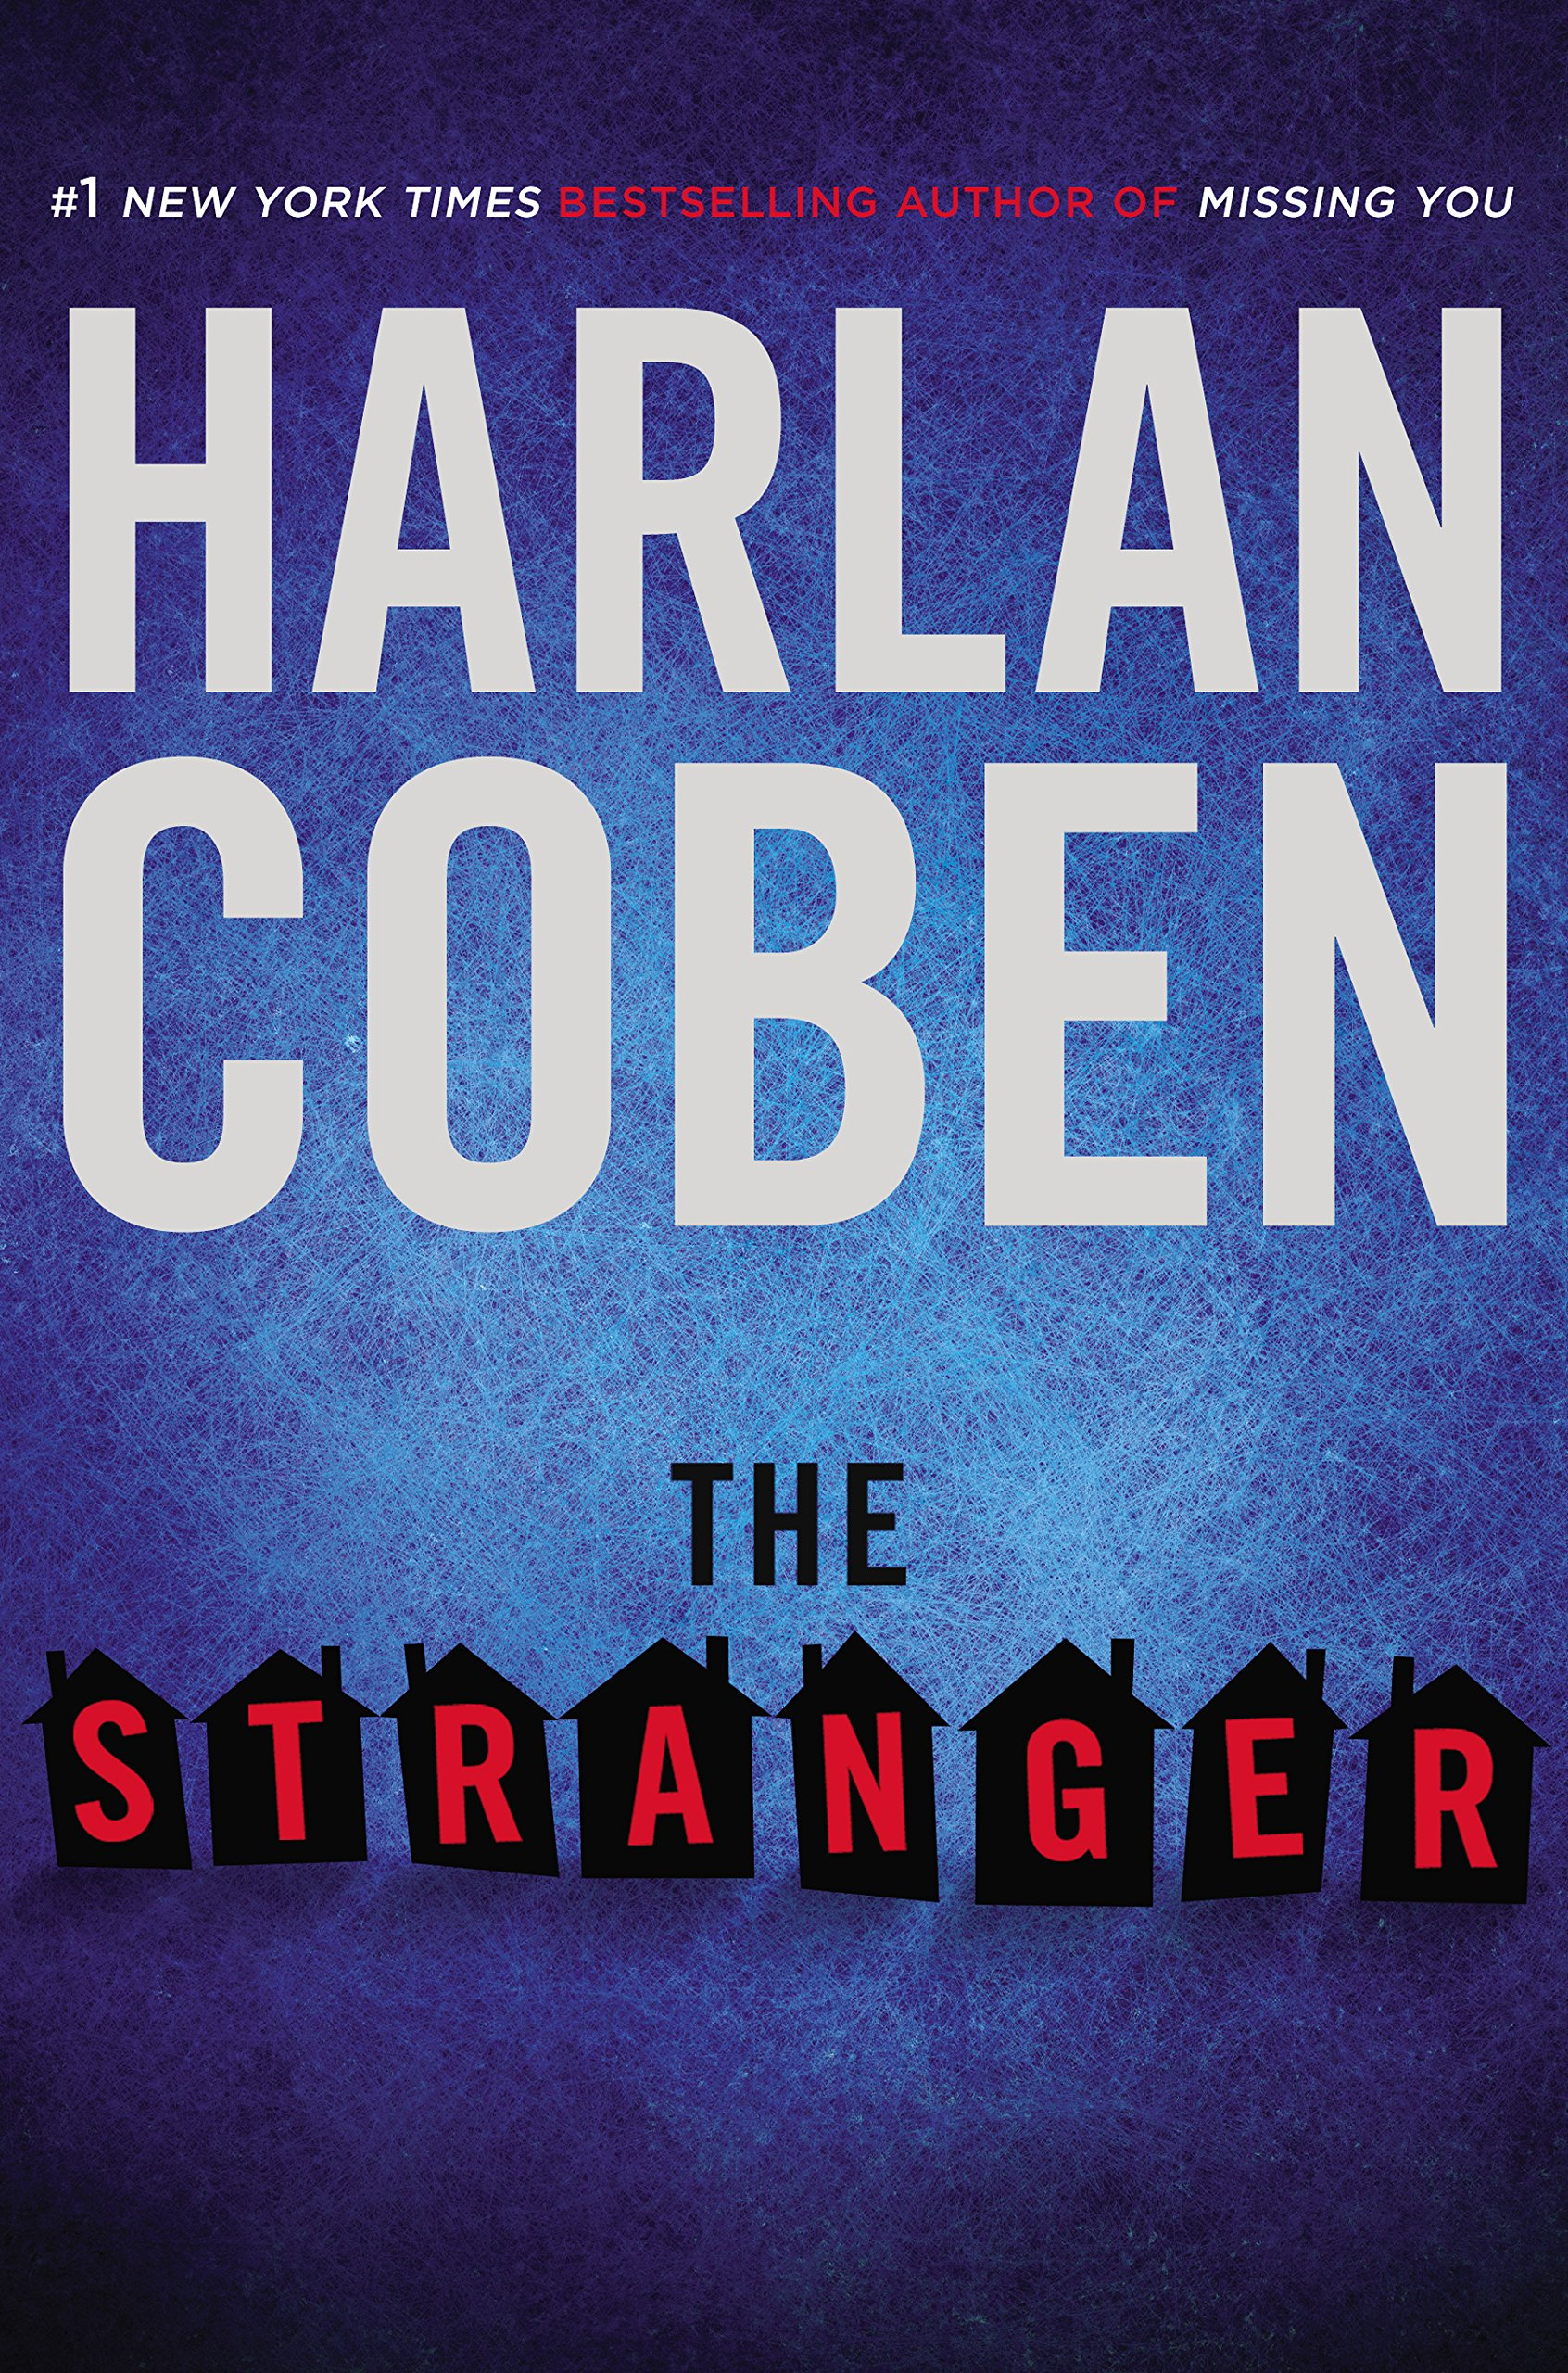 Harlan-Coben-The-Stranger